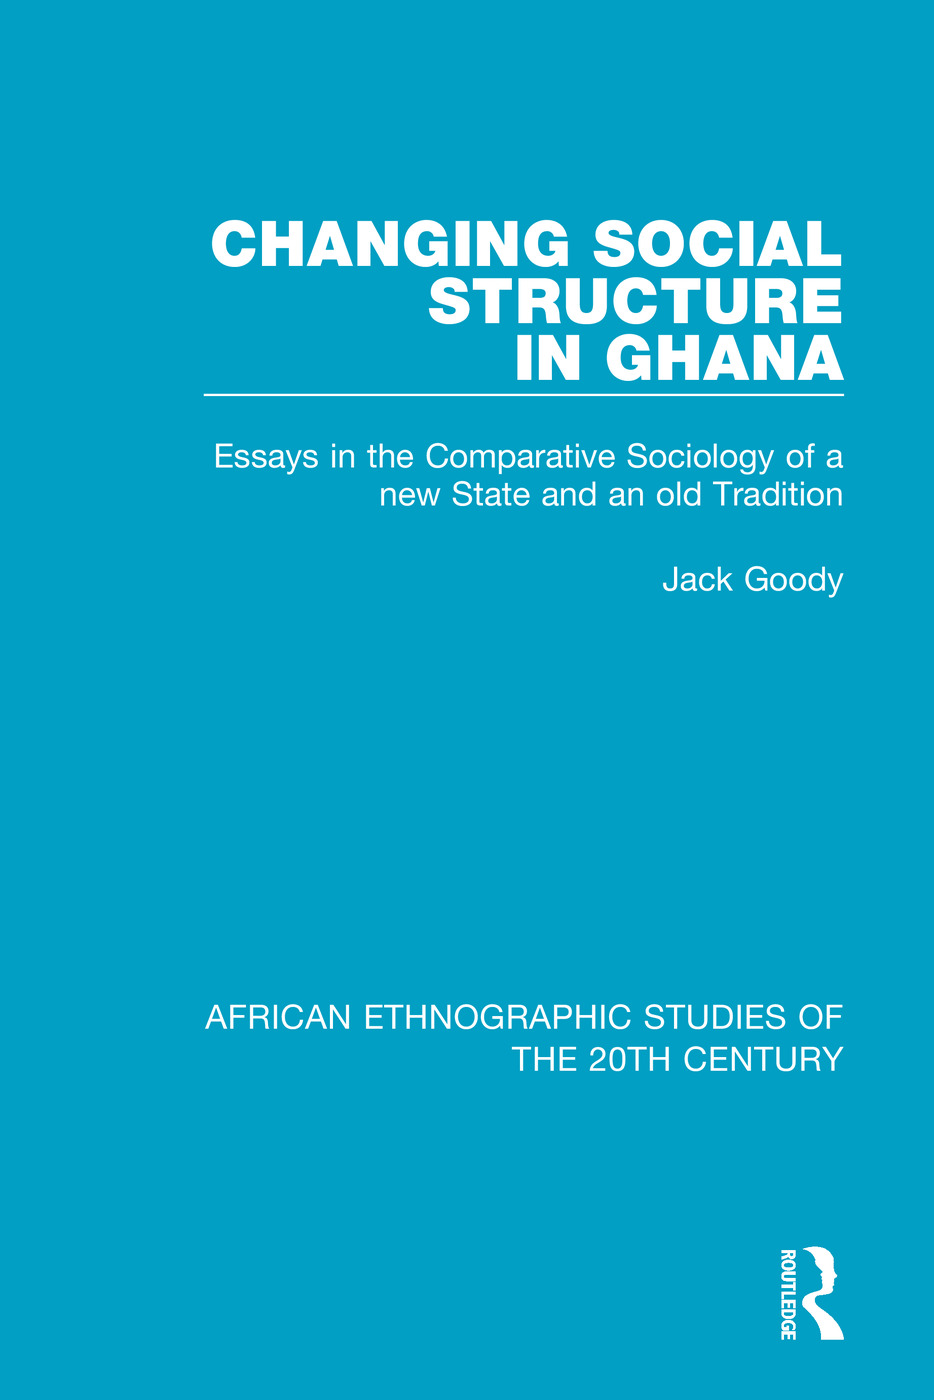 Changing Social Structure in Ghana: Essays in the Comparative Sociology of a new State and an old Tradition book cover